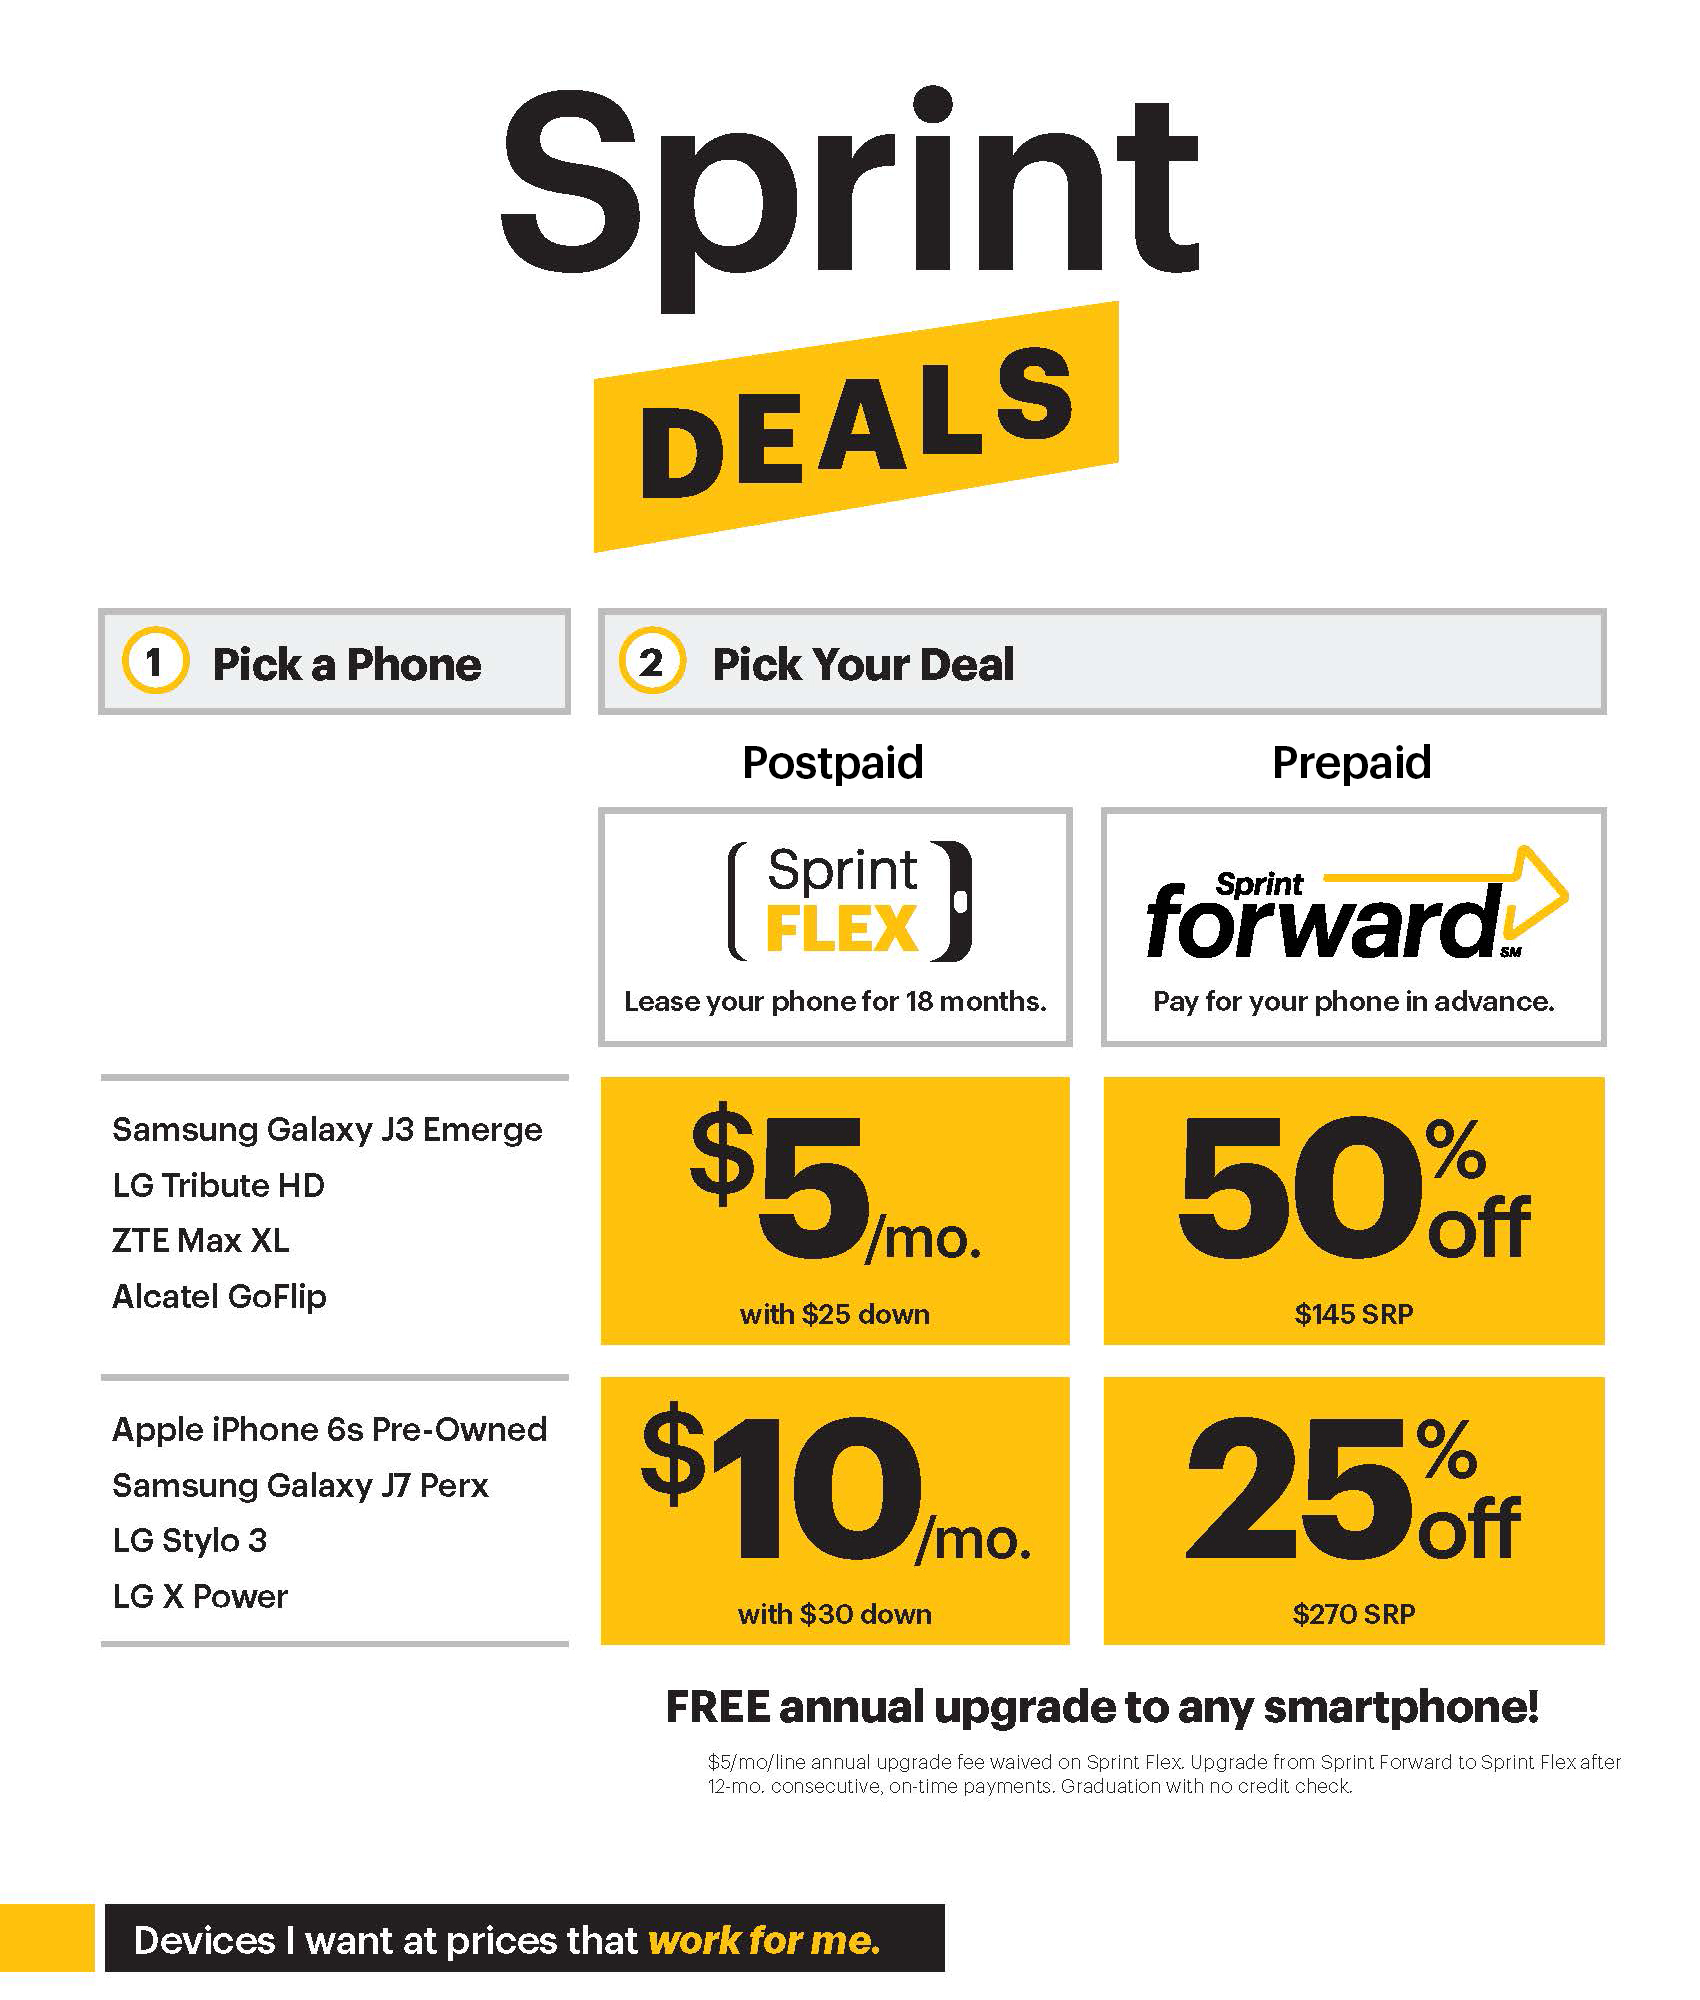 Sprint Flex is The Best Way to Get the Latest Smartphone